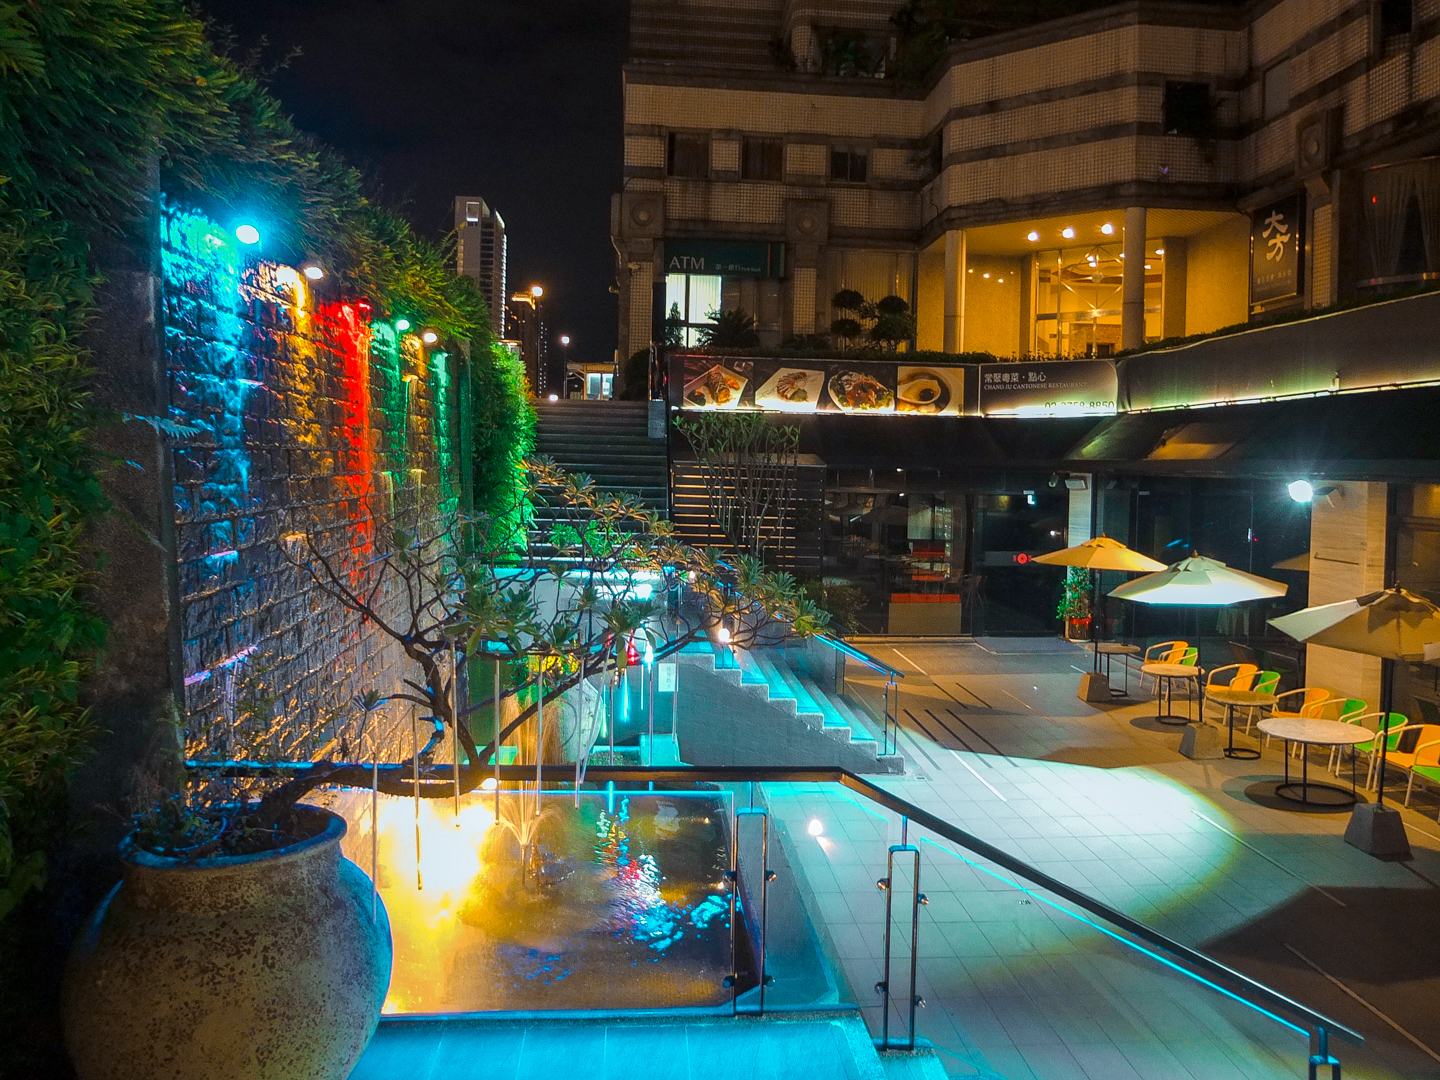 Sparkle Hotel Taipei: Offers the Convenience to Stay near Taipei's Top Attractions